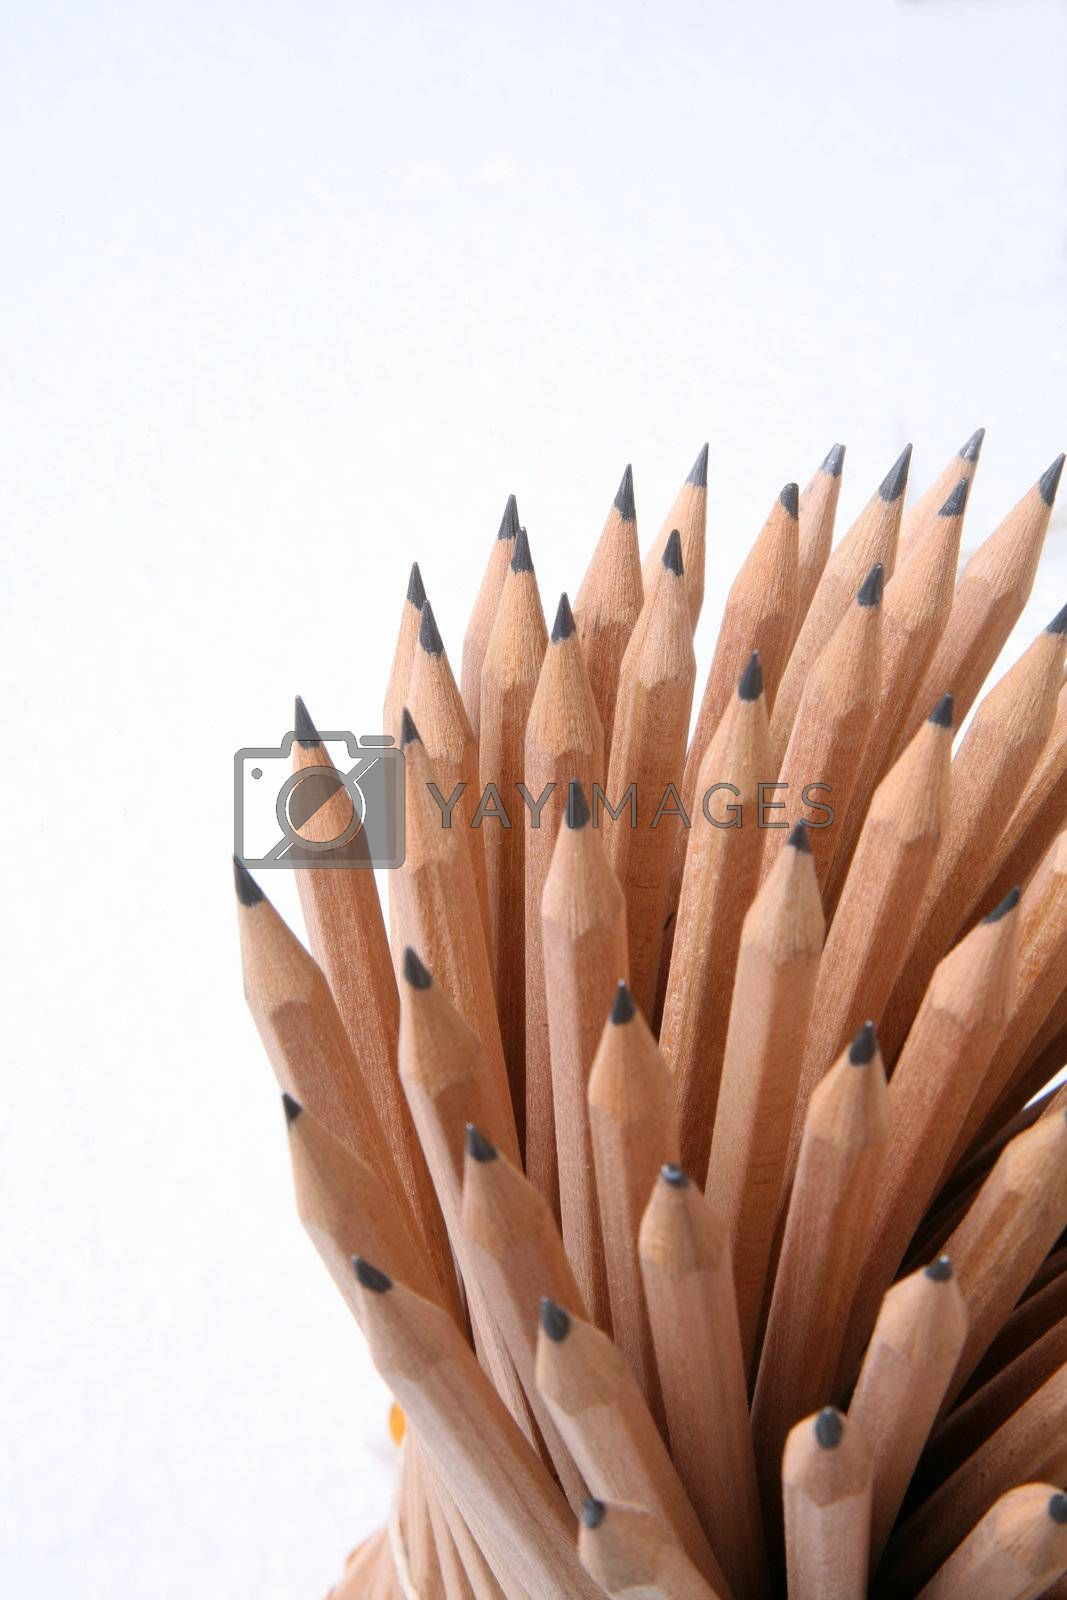 Bunch of pencils isolated on white